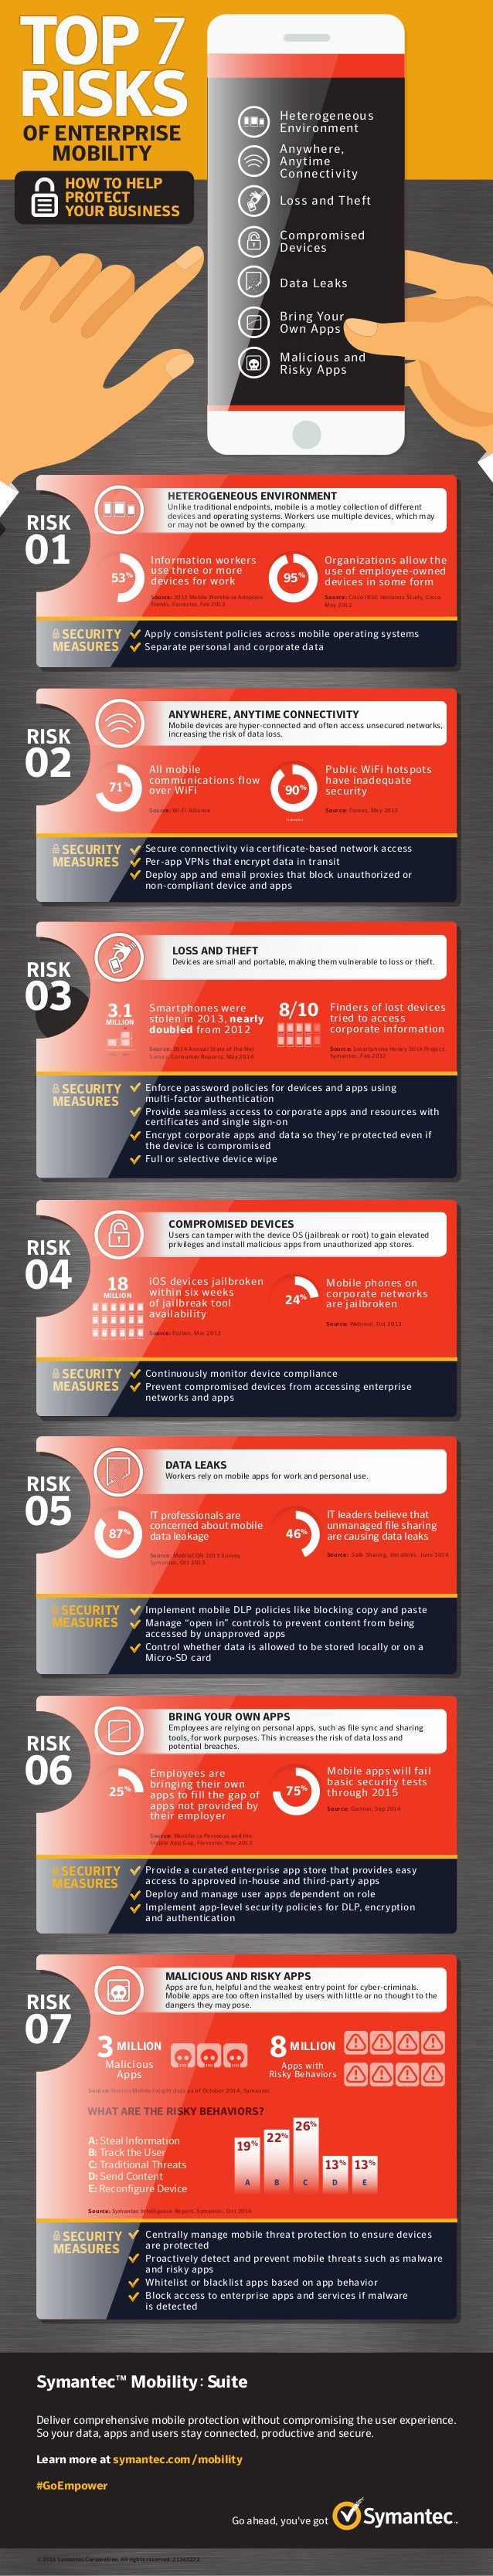 Top Seven Risks of Enterprise Mobility - How to protect your business